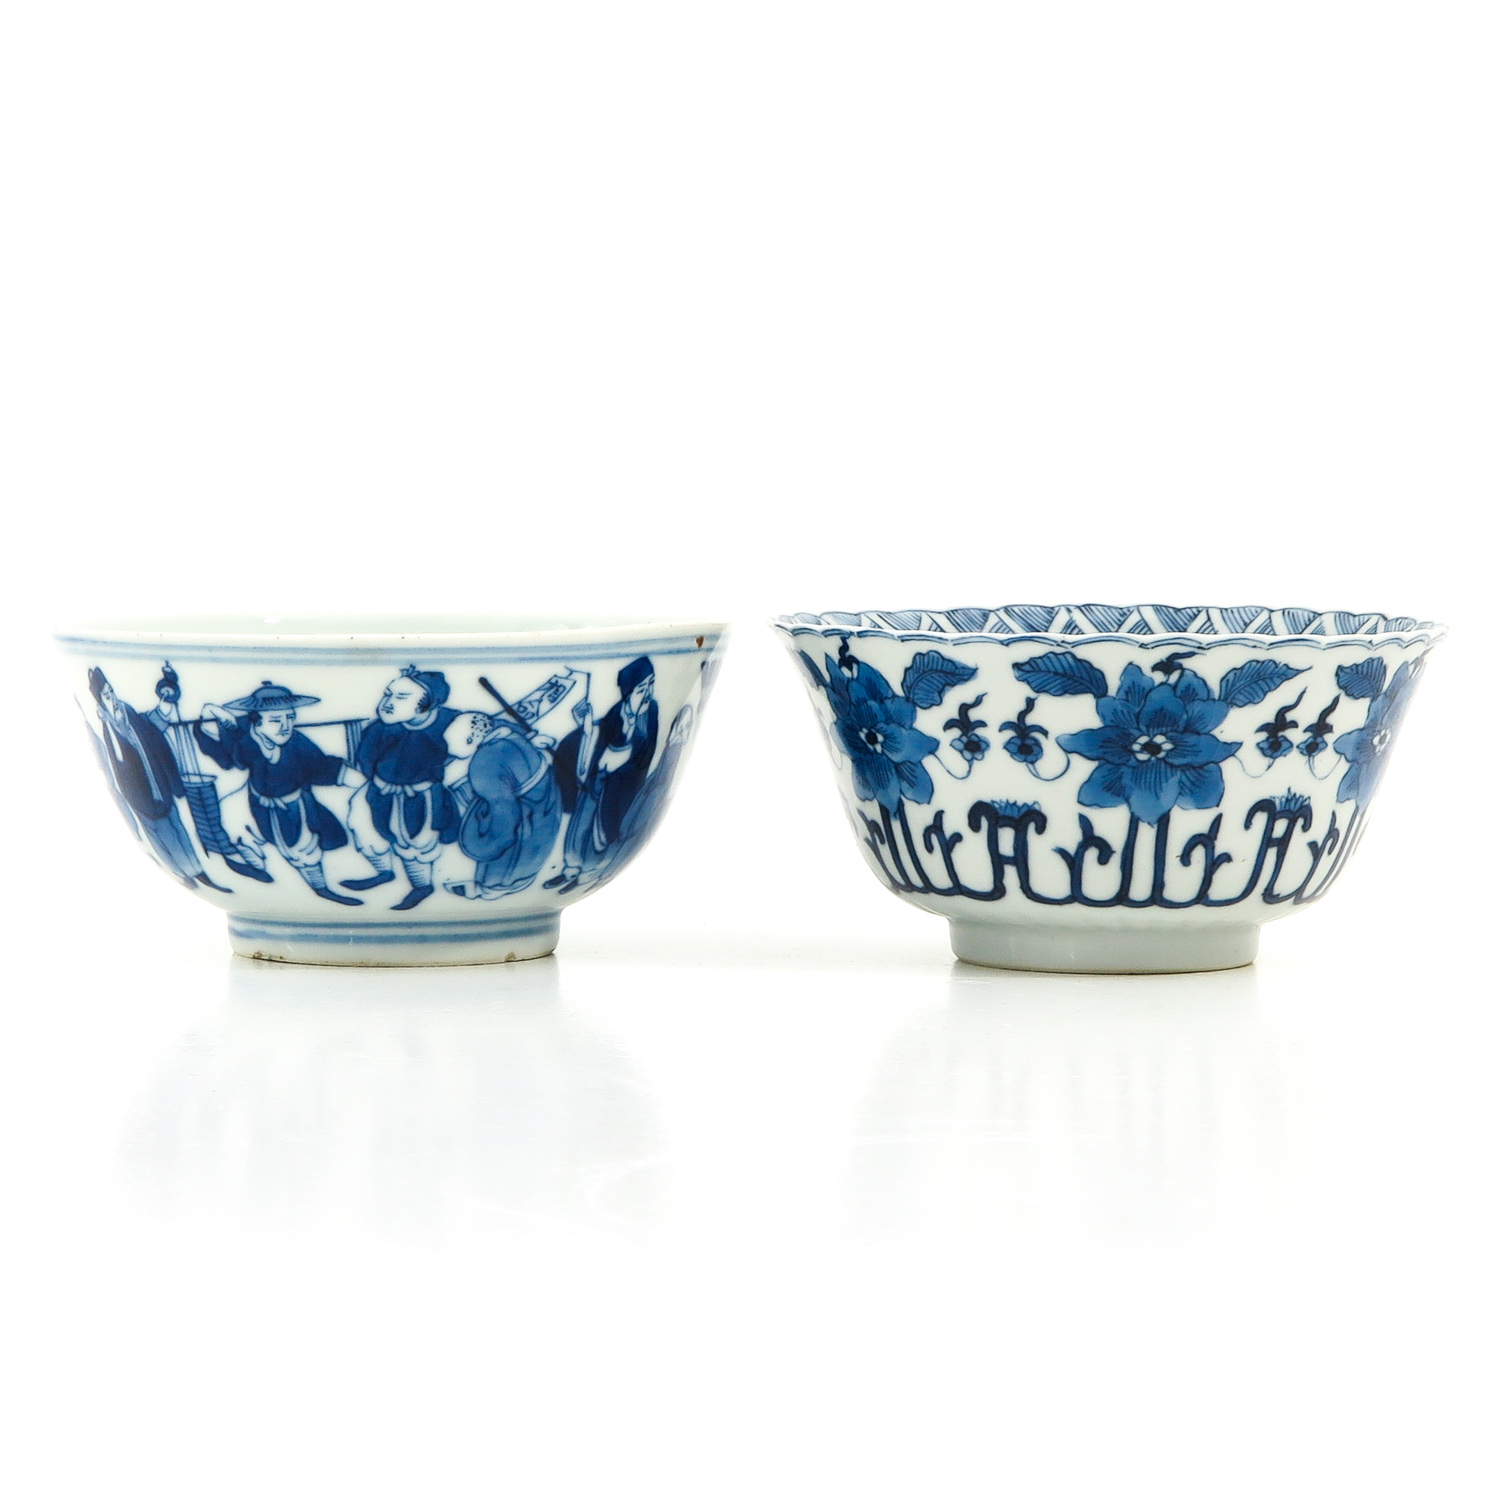 A Lot of 2 Blue and White Bowls